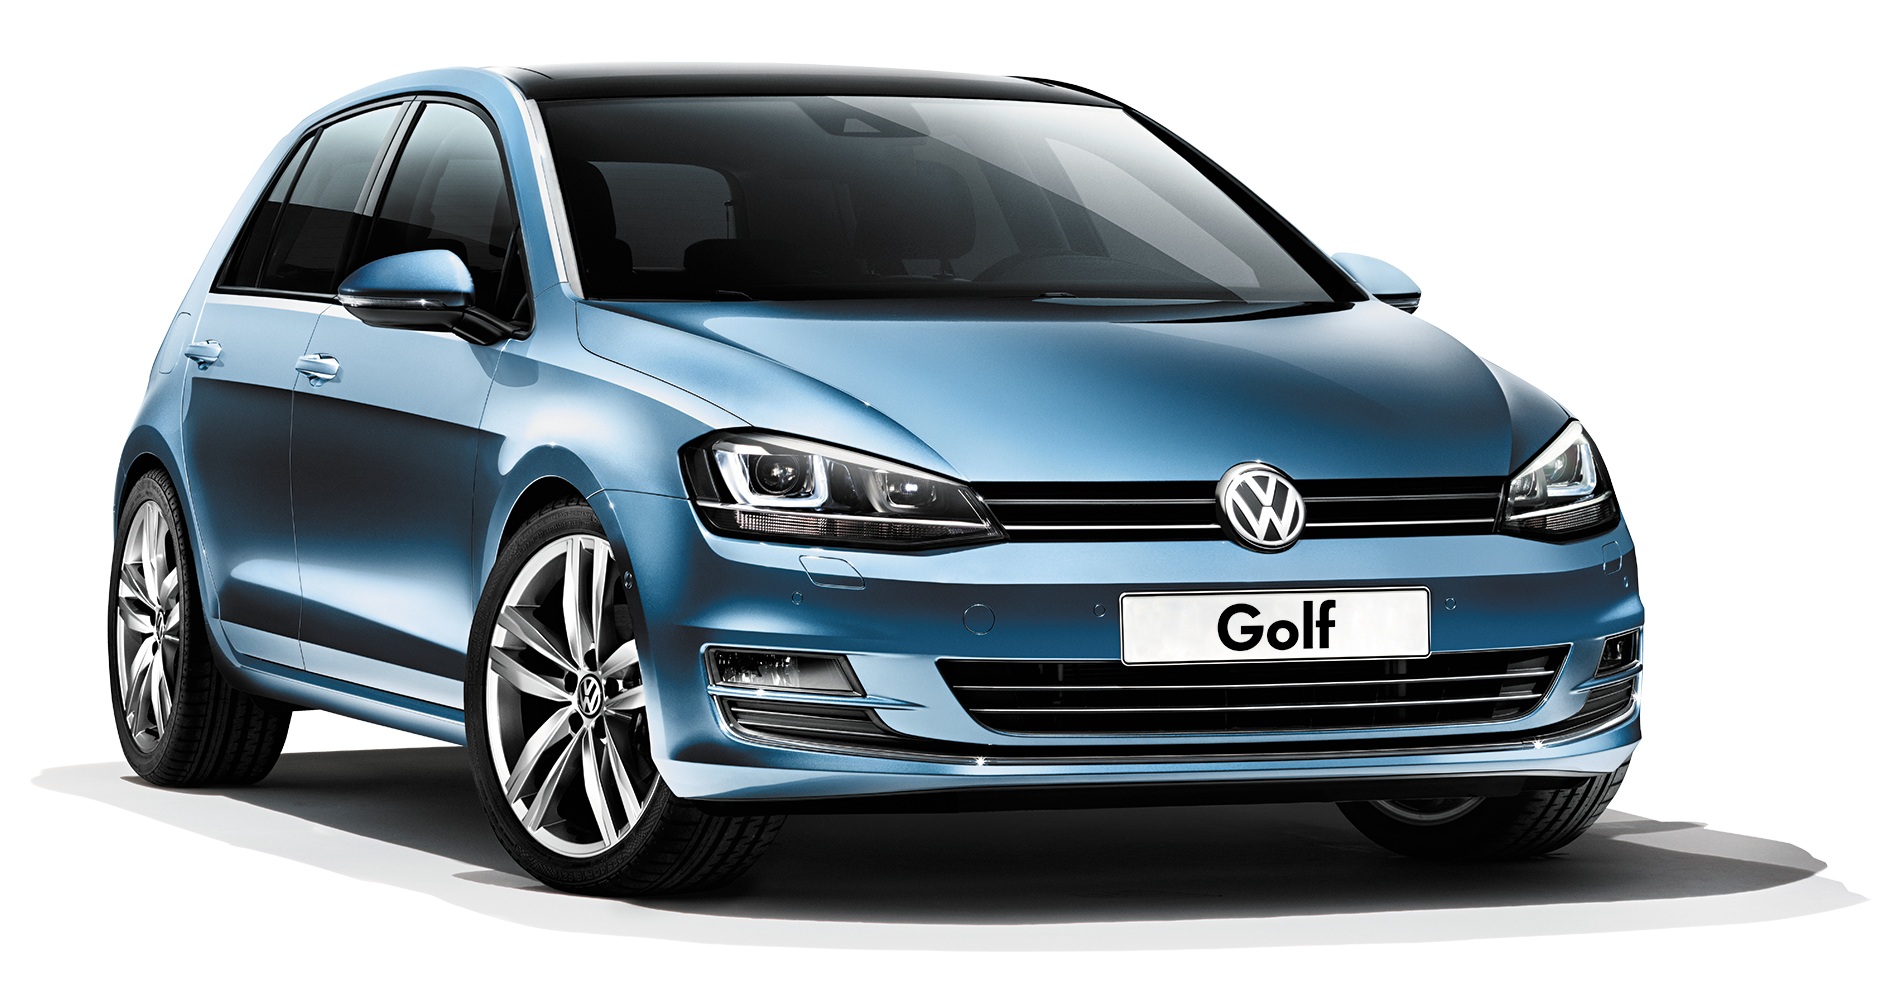 volkswagen png car image  free download images free golf clip art cartoon free golf clip art cartoon